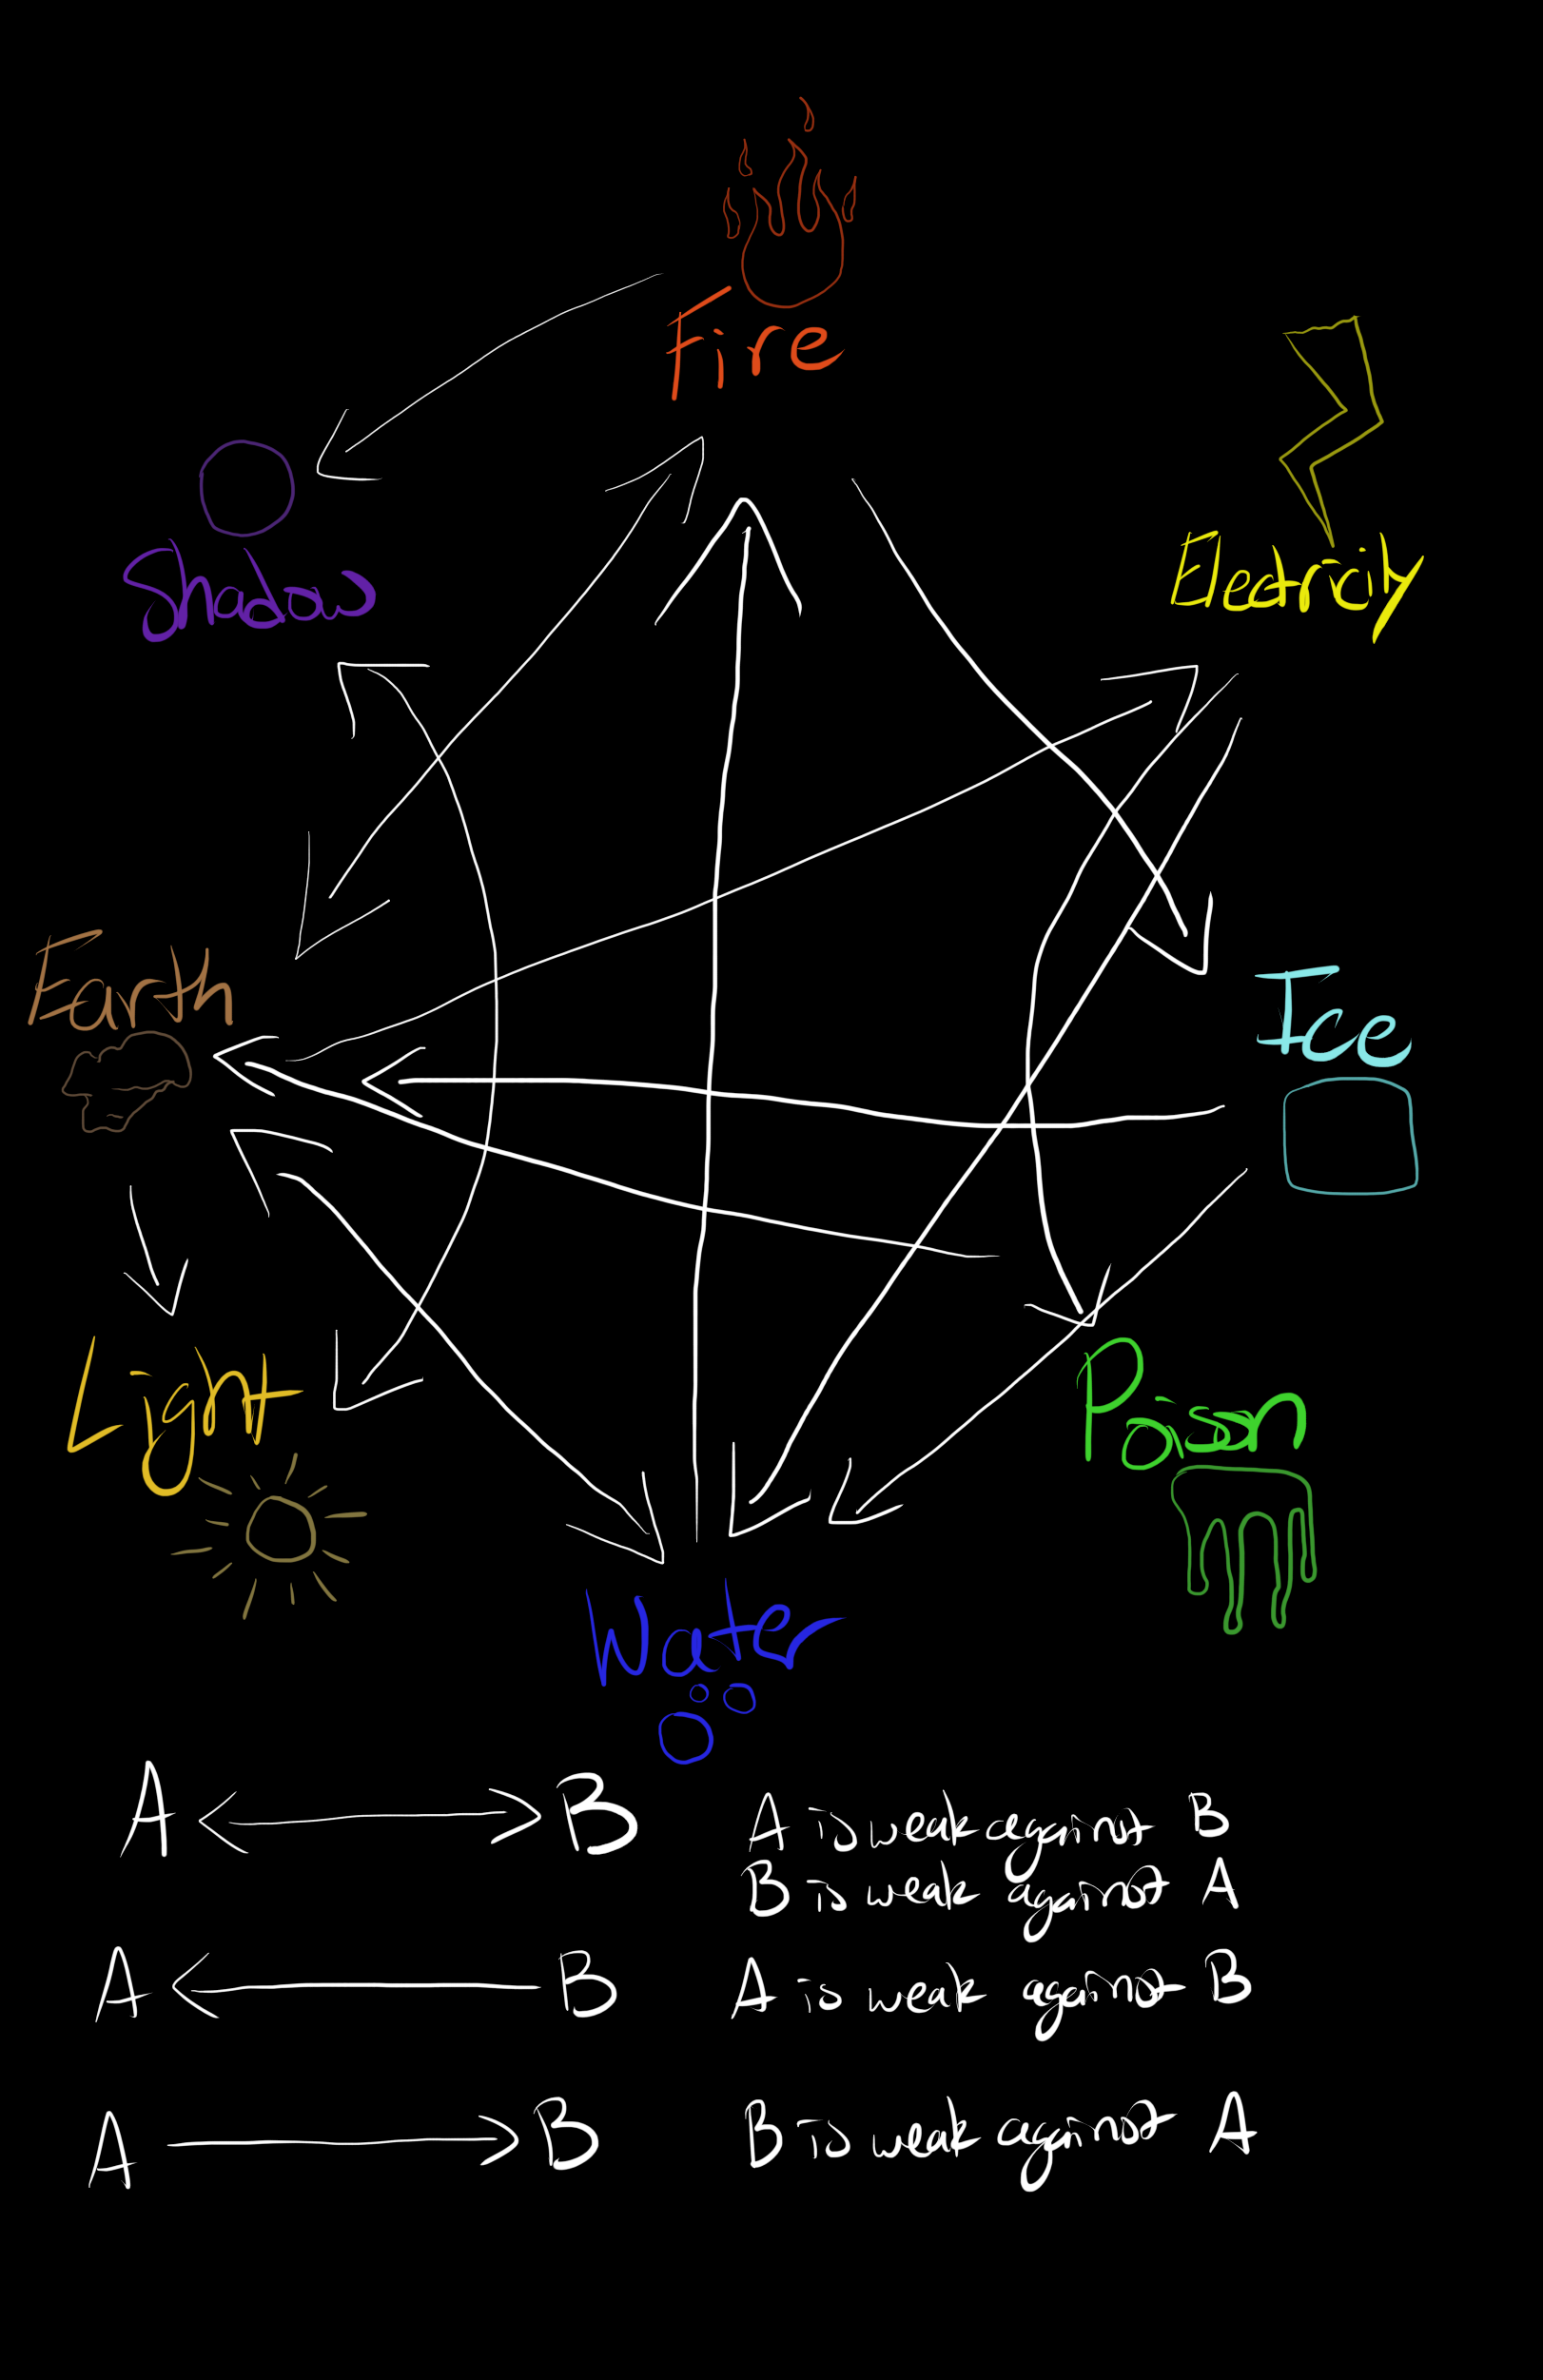 Spells and Magic Physical / Metaphysical Law in Actrein